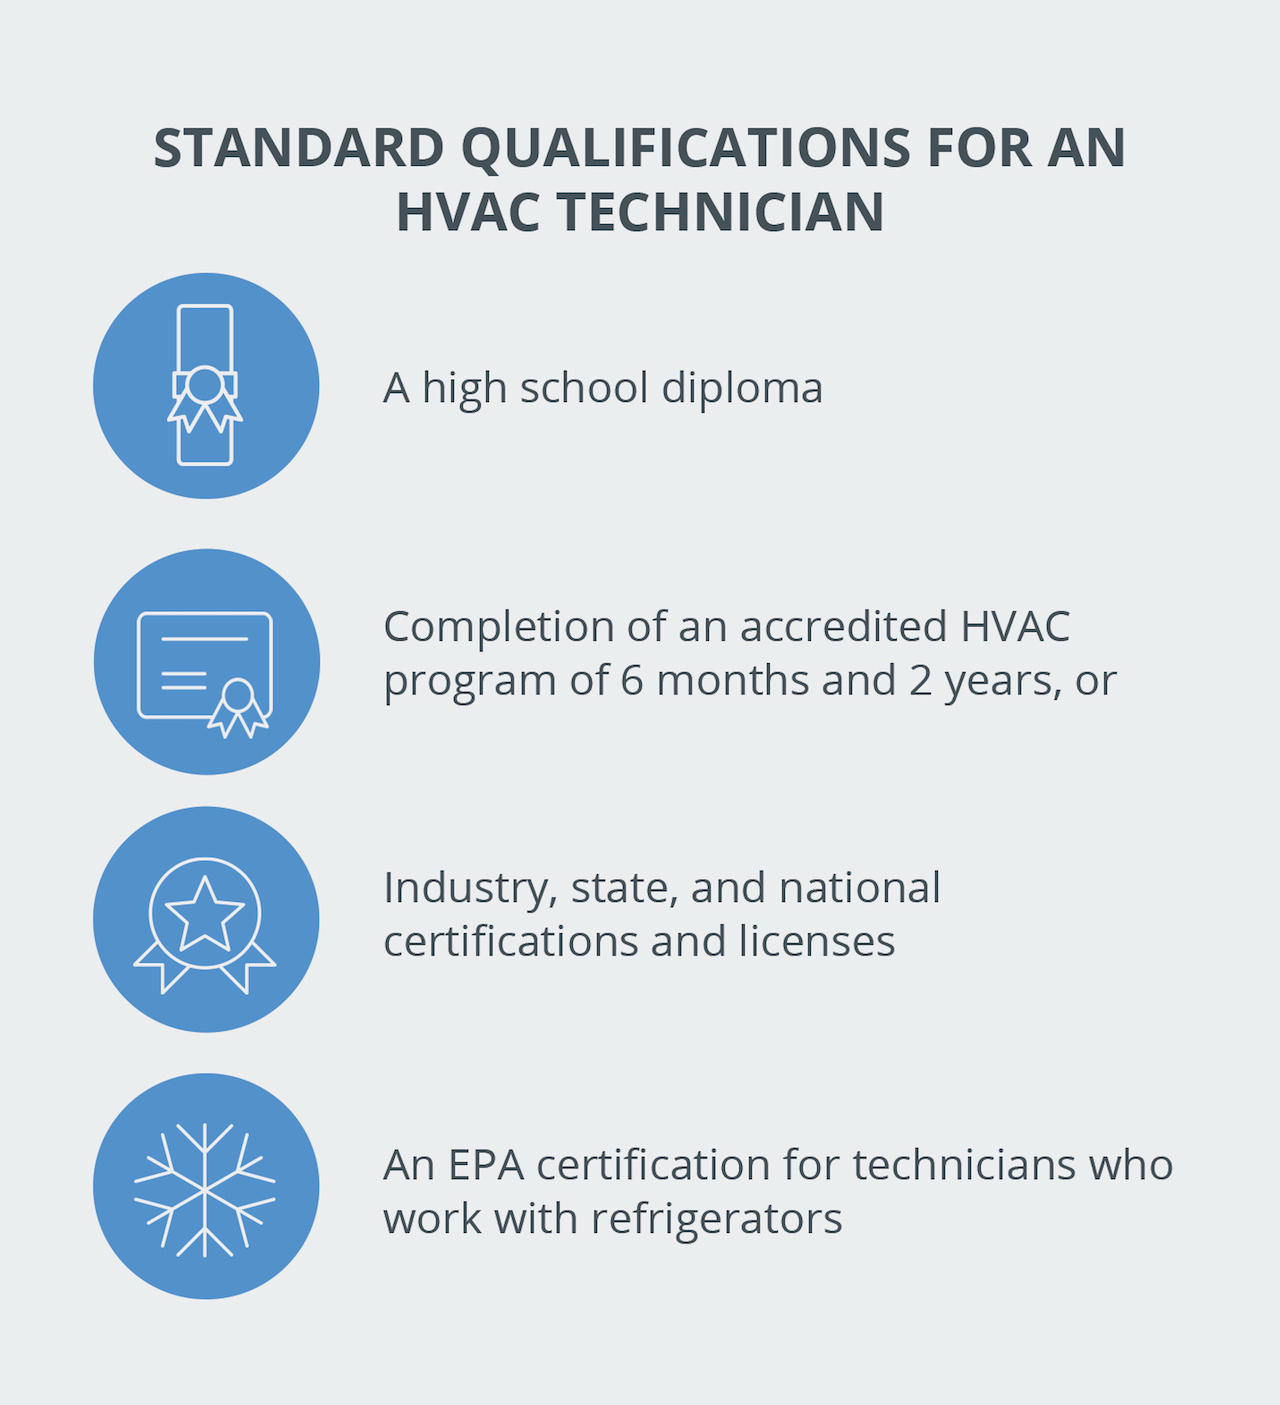 Standard qualifications for an HVAC technician